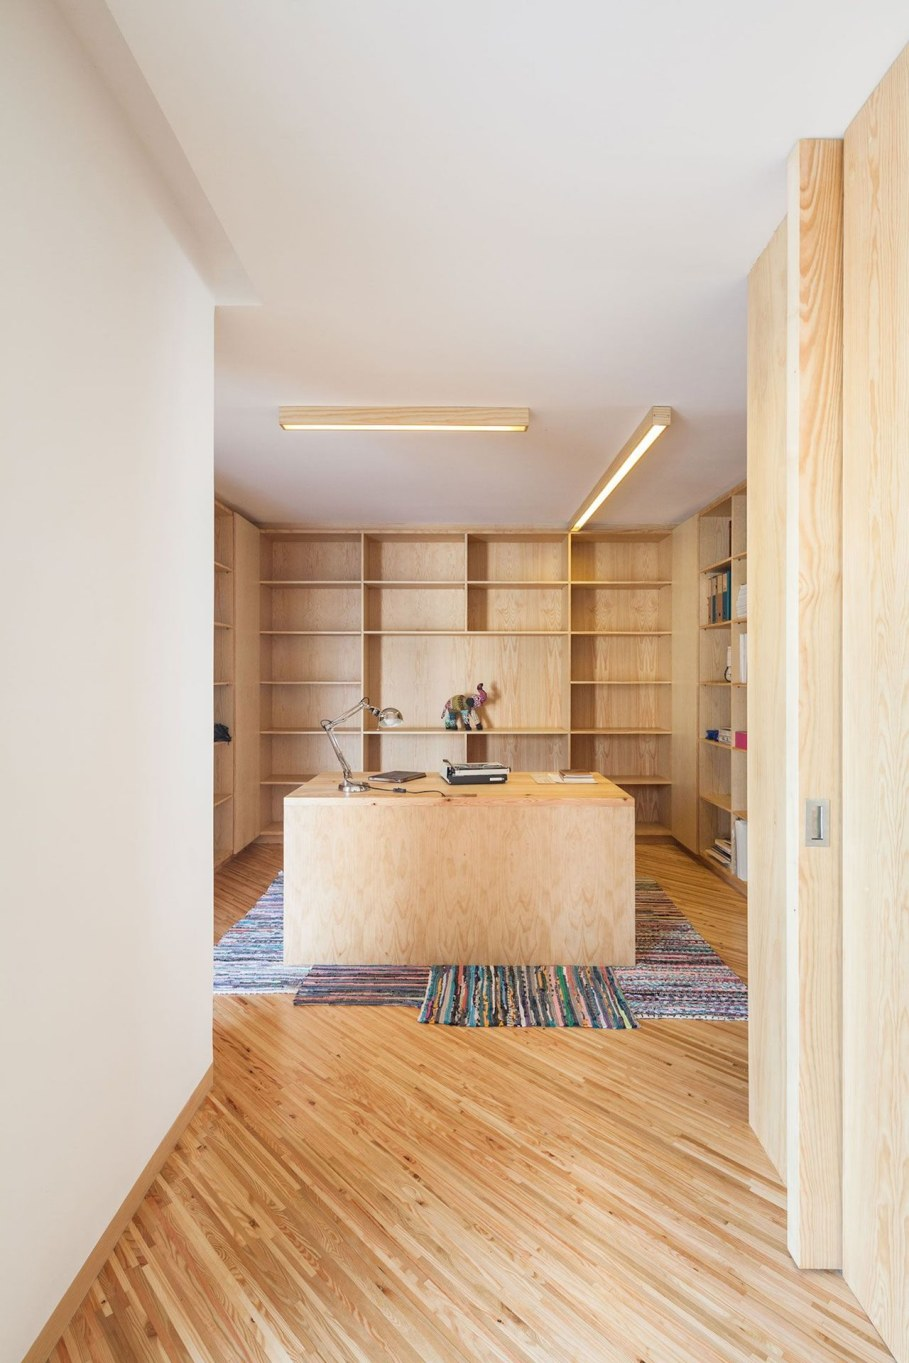 Silver Wood House By Ernesto Pereira - Workplace